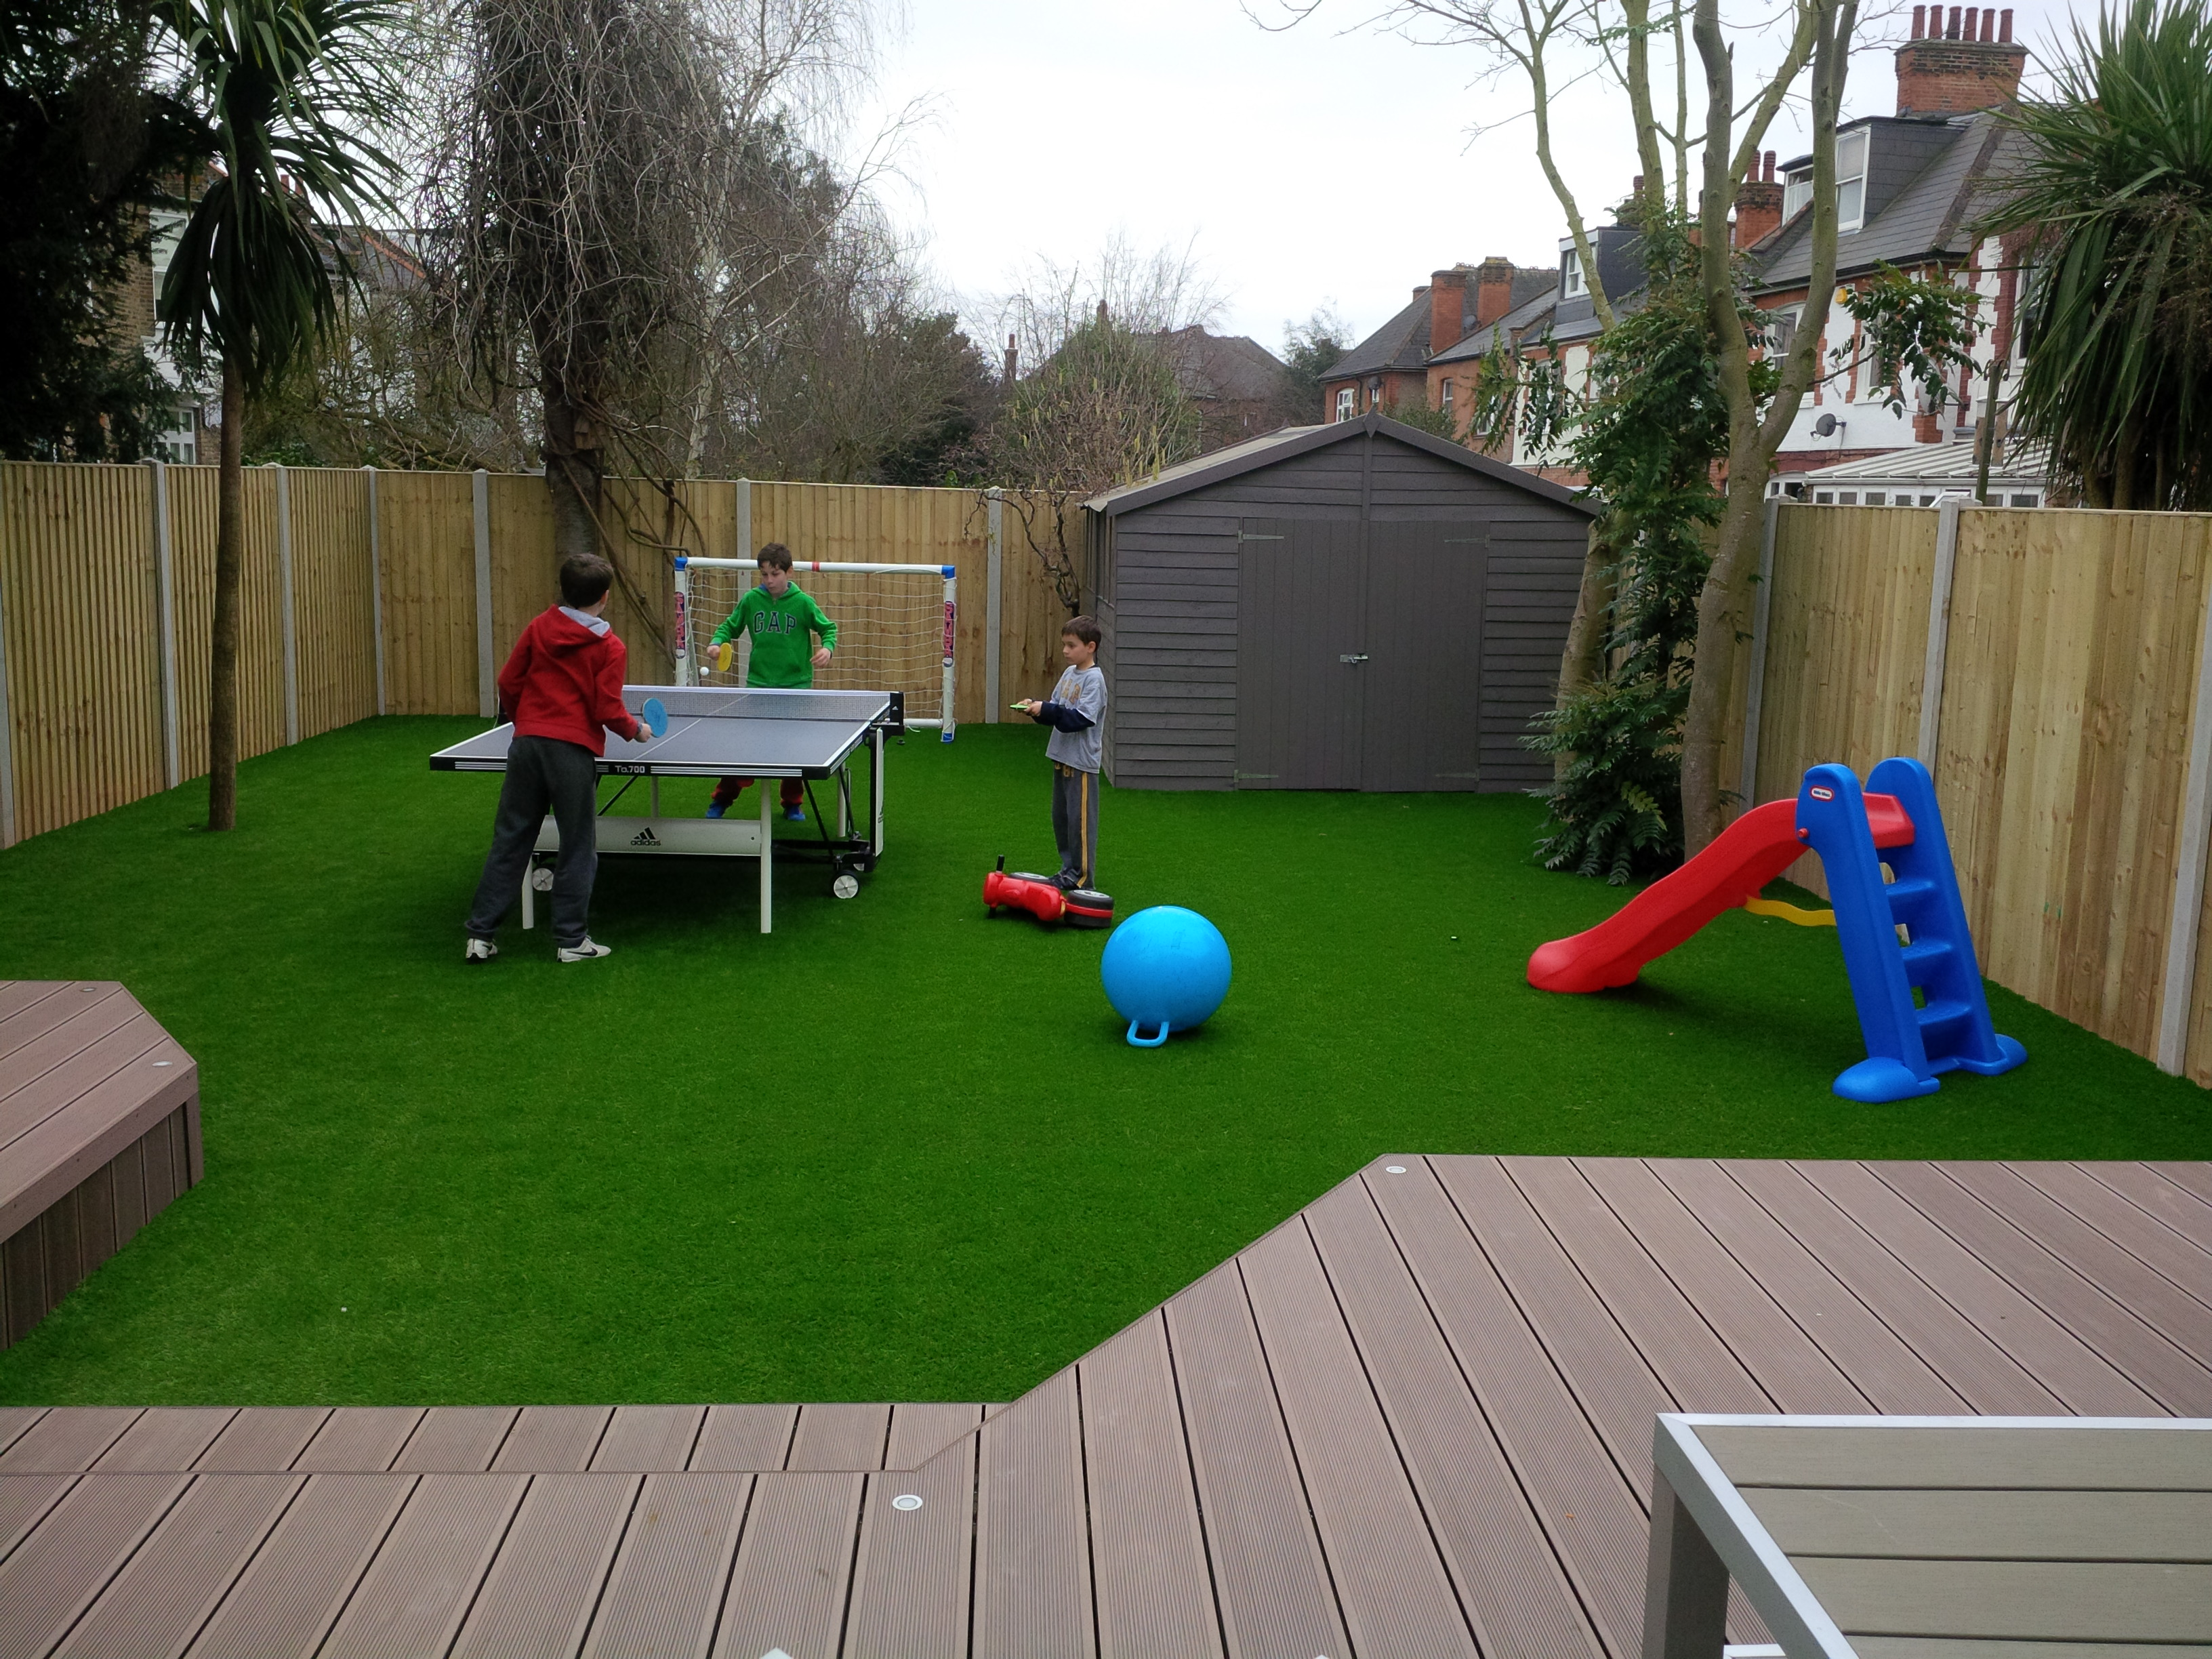 Artificial Grass Eligrass Silver Price Per 1m2 Select Quantity Required Call For A Free Sample